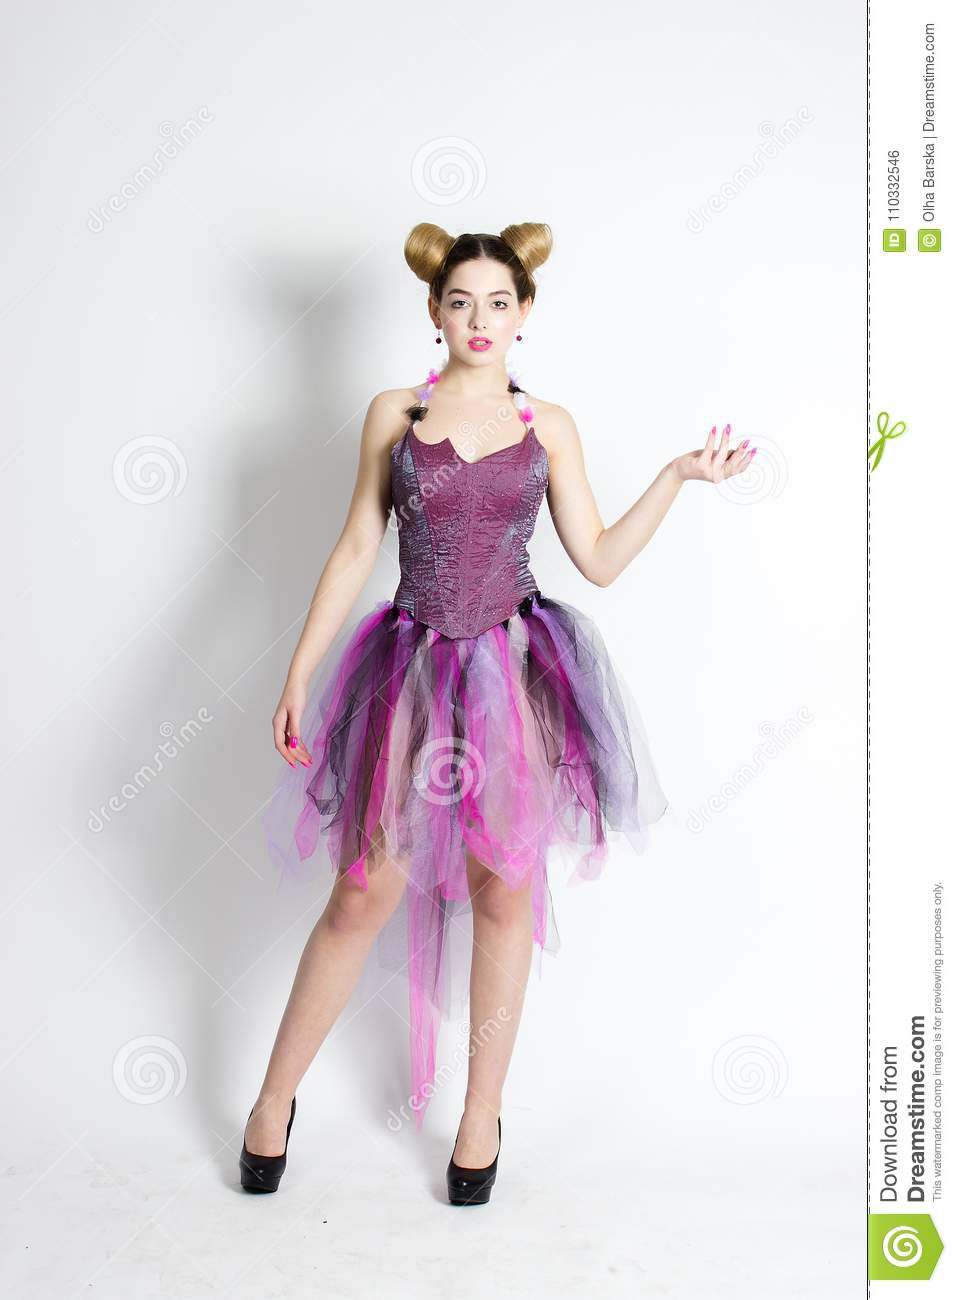 0c980aaf6752 A Beautiful Girl, Standing In A Doll Suit, Wearing A Dress And Heels ...